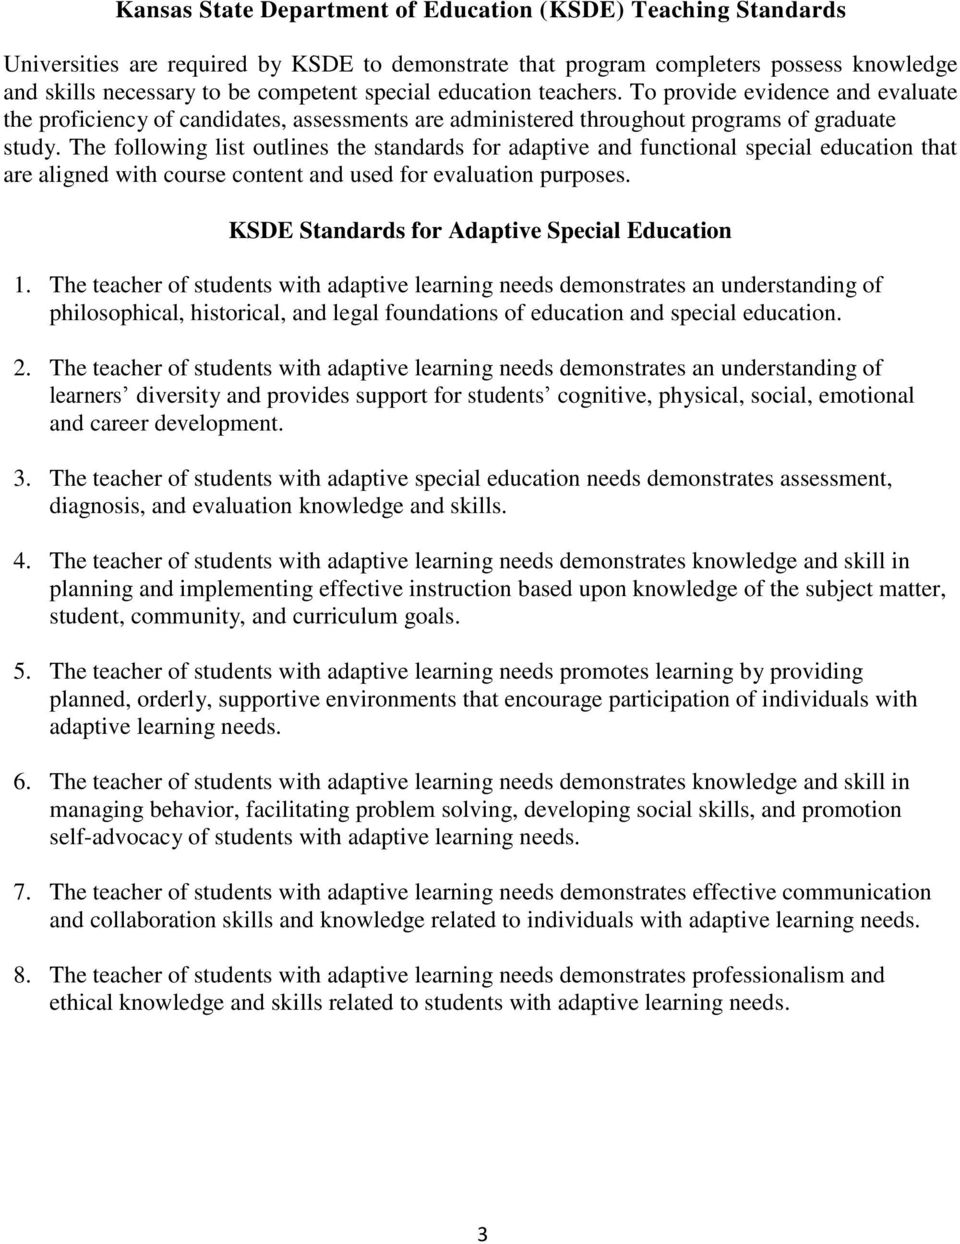 The following list outlines the standards for adaptive and functional special education that are aligned with course content and used for evaluation purposes.